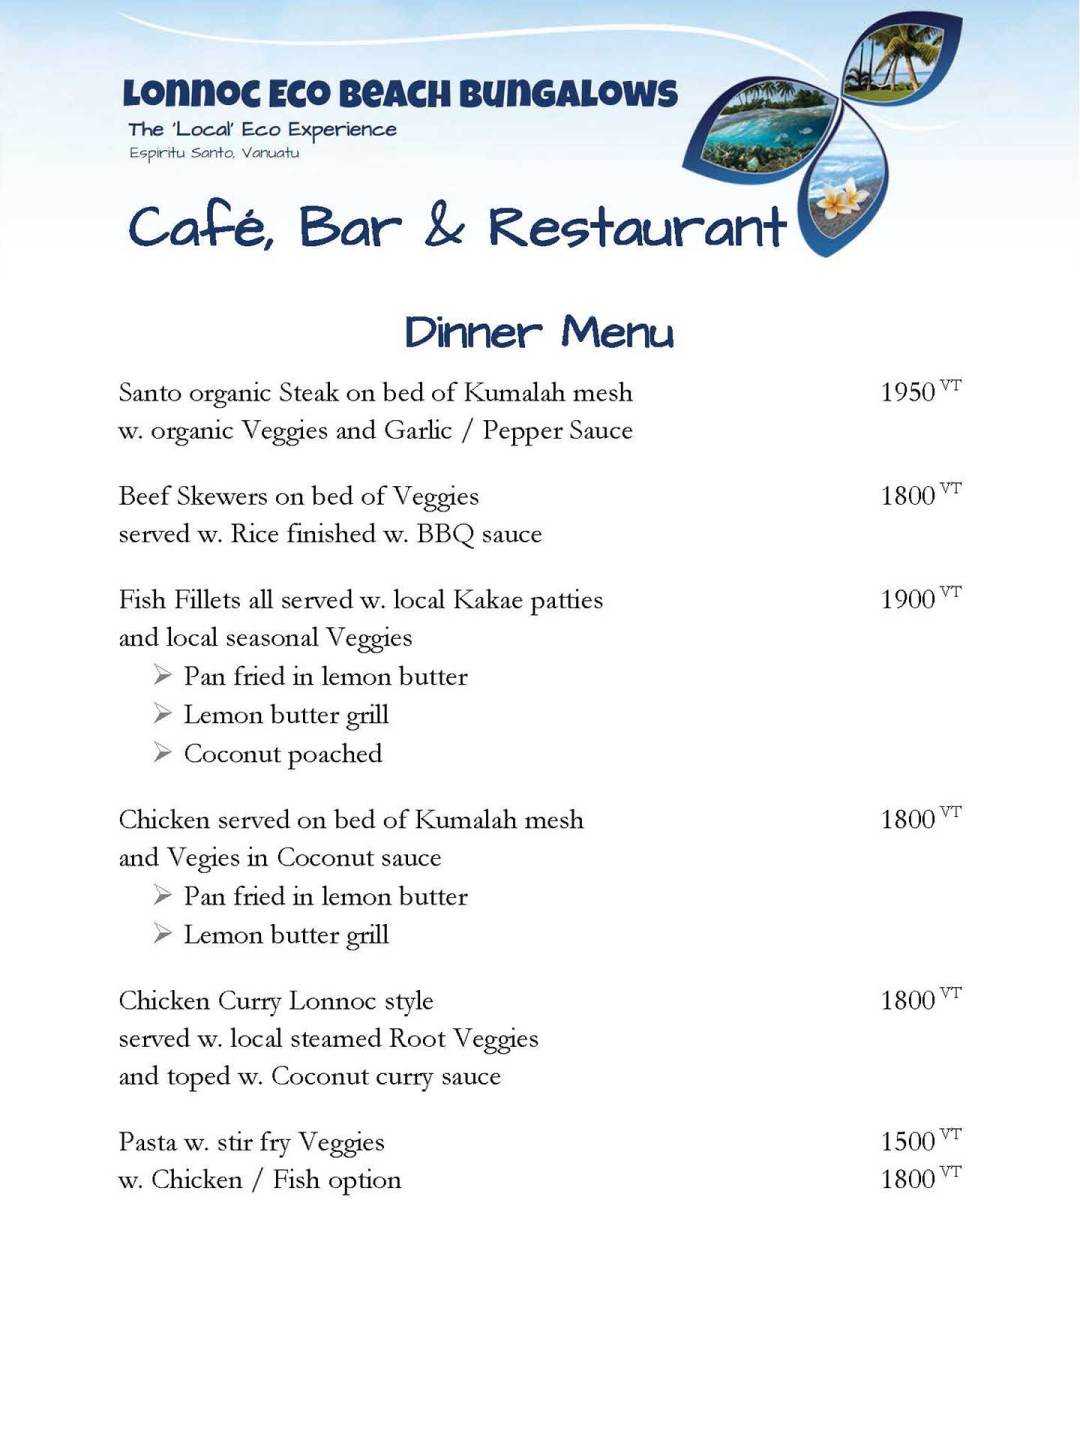 Dinner menu - Lonnoc Eco Beach Bunganlows